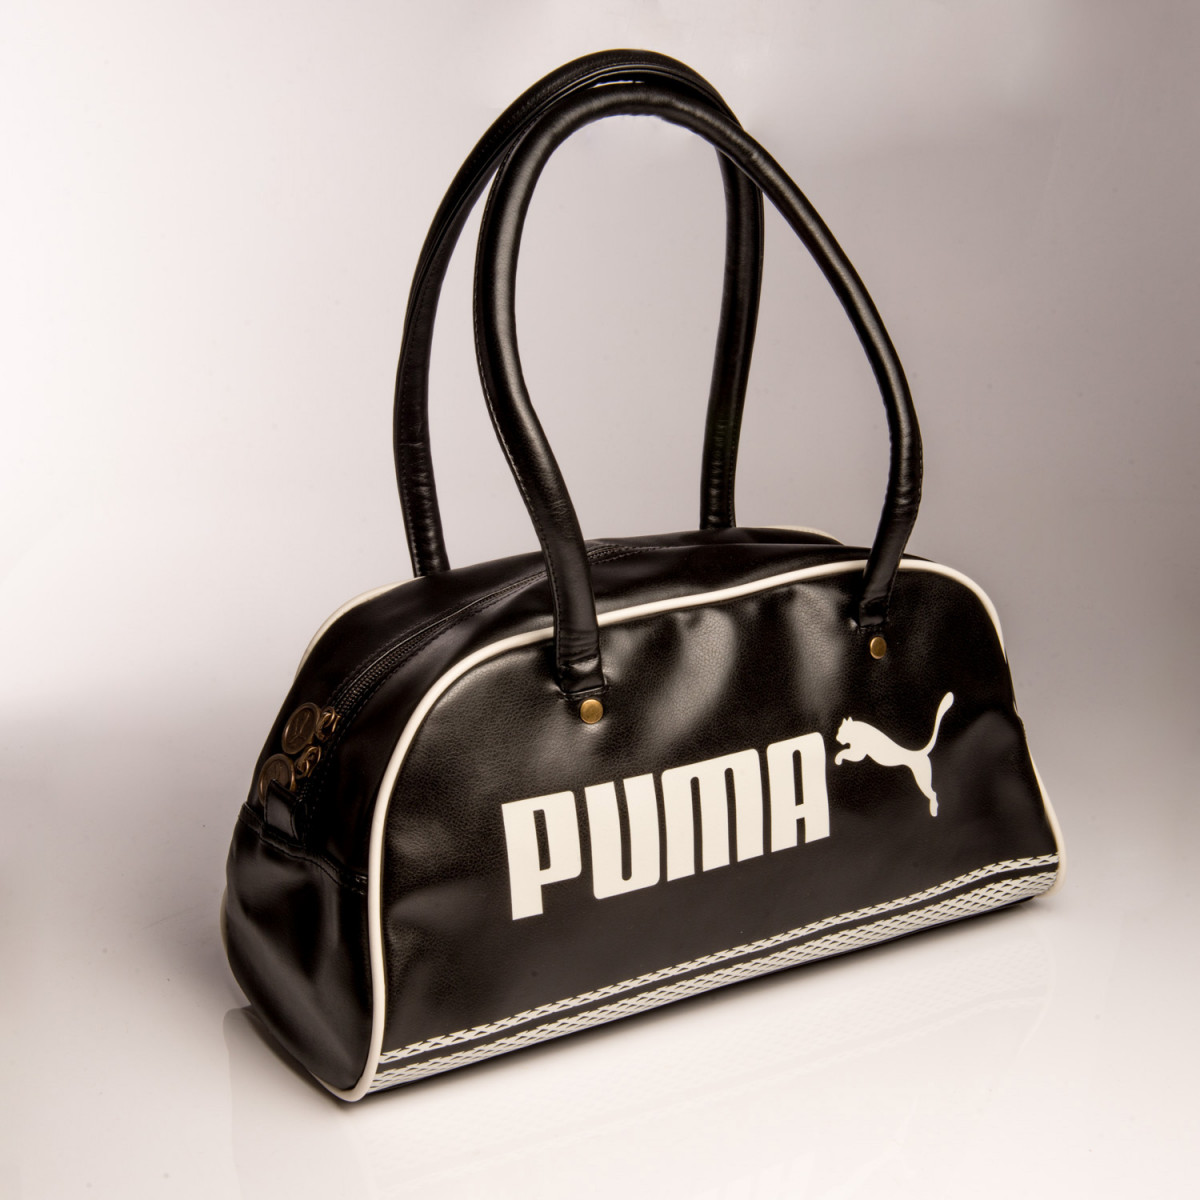 CARTERA PUMA CAMPUS HANDBAG